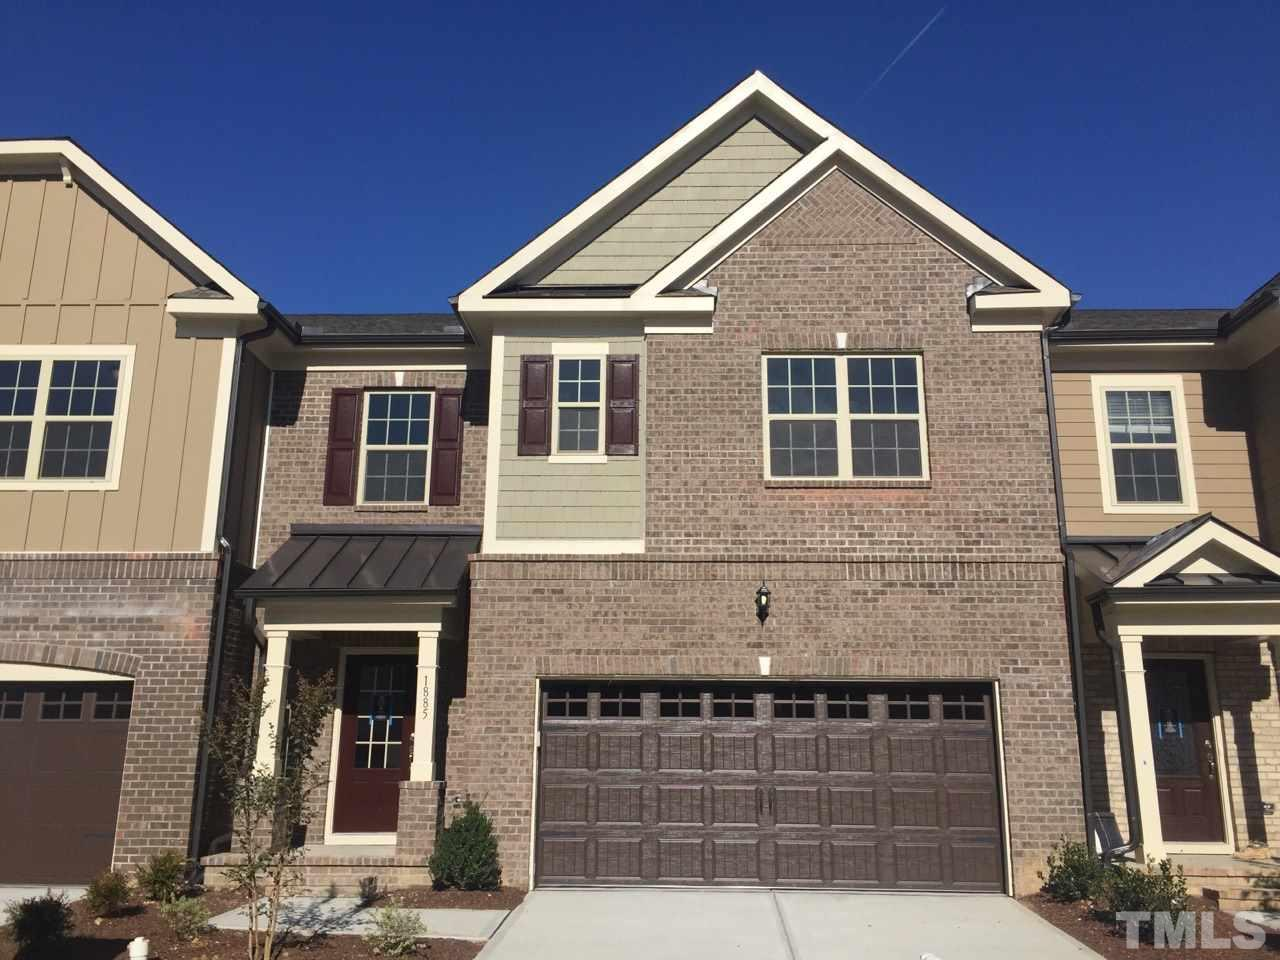 1885 Blue Jay Point BC Lot 492, Apex, NC 27502